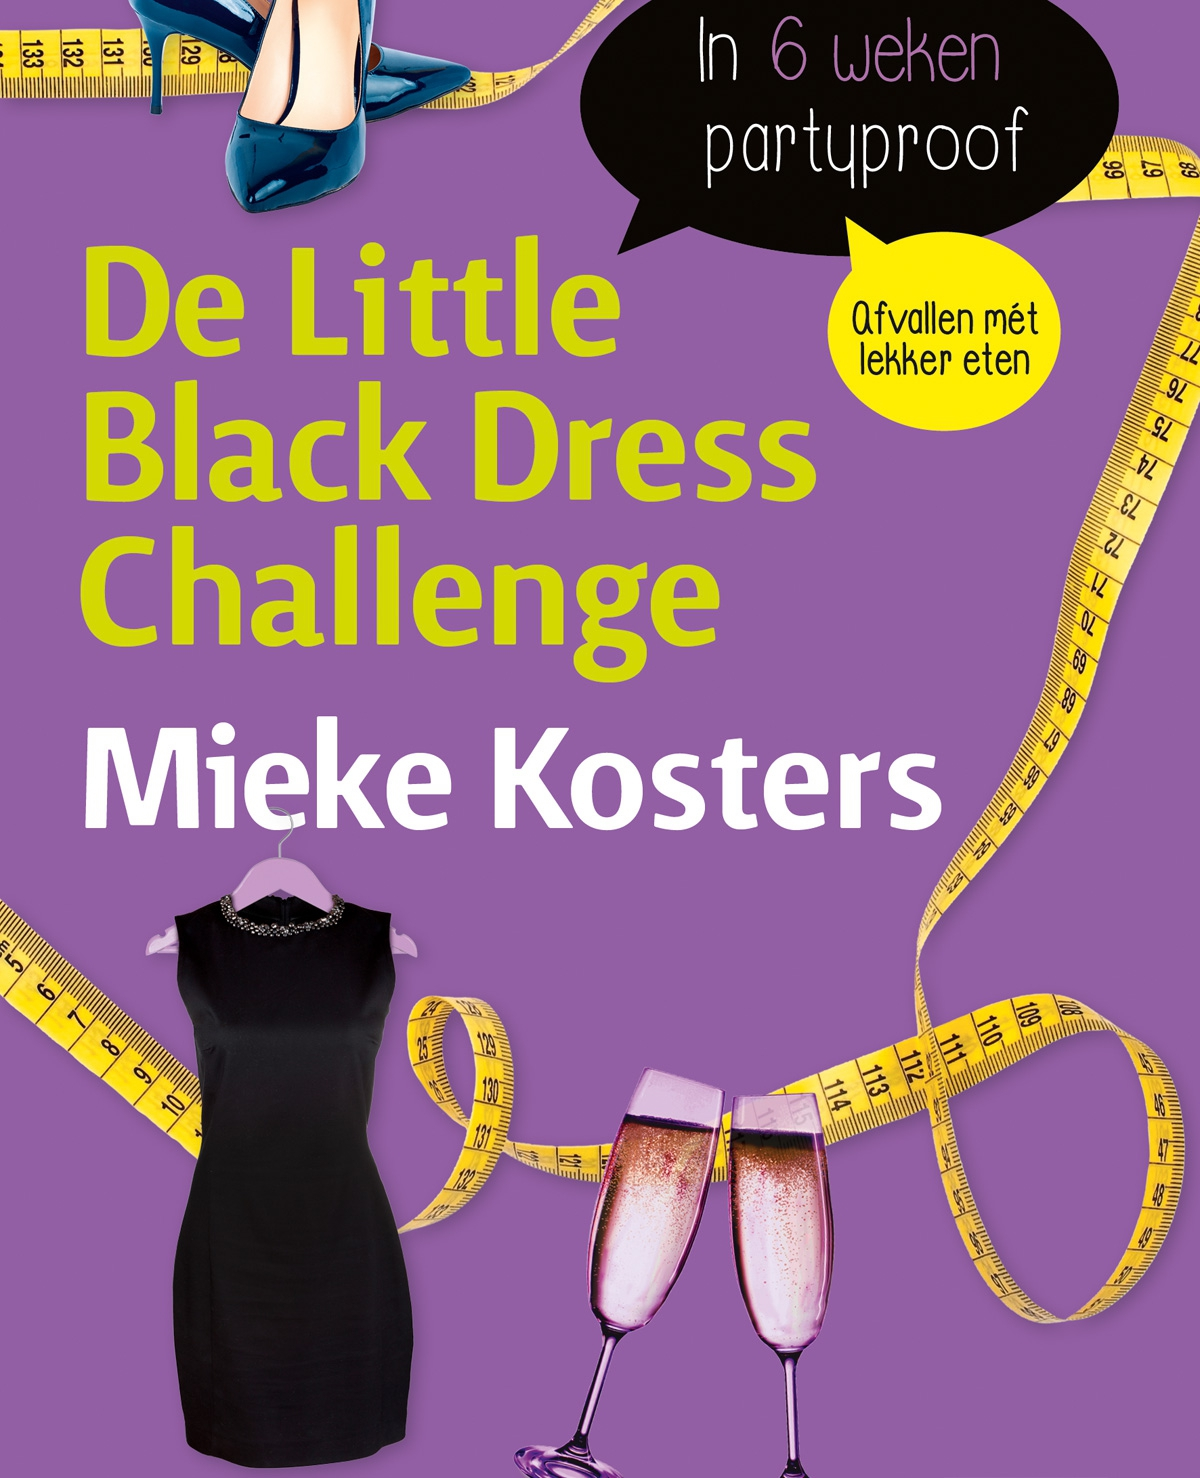 Win het boek De Little Black Dress van Mieke Kosters